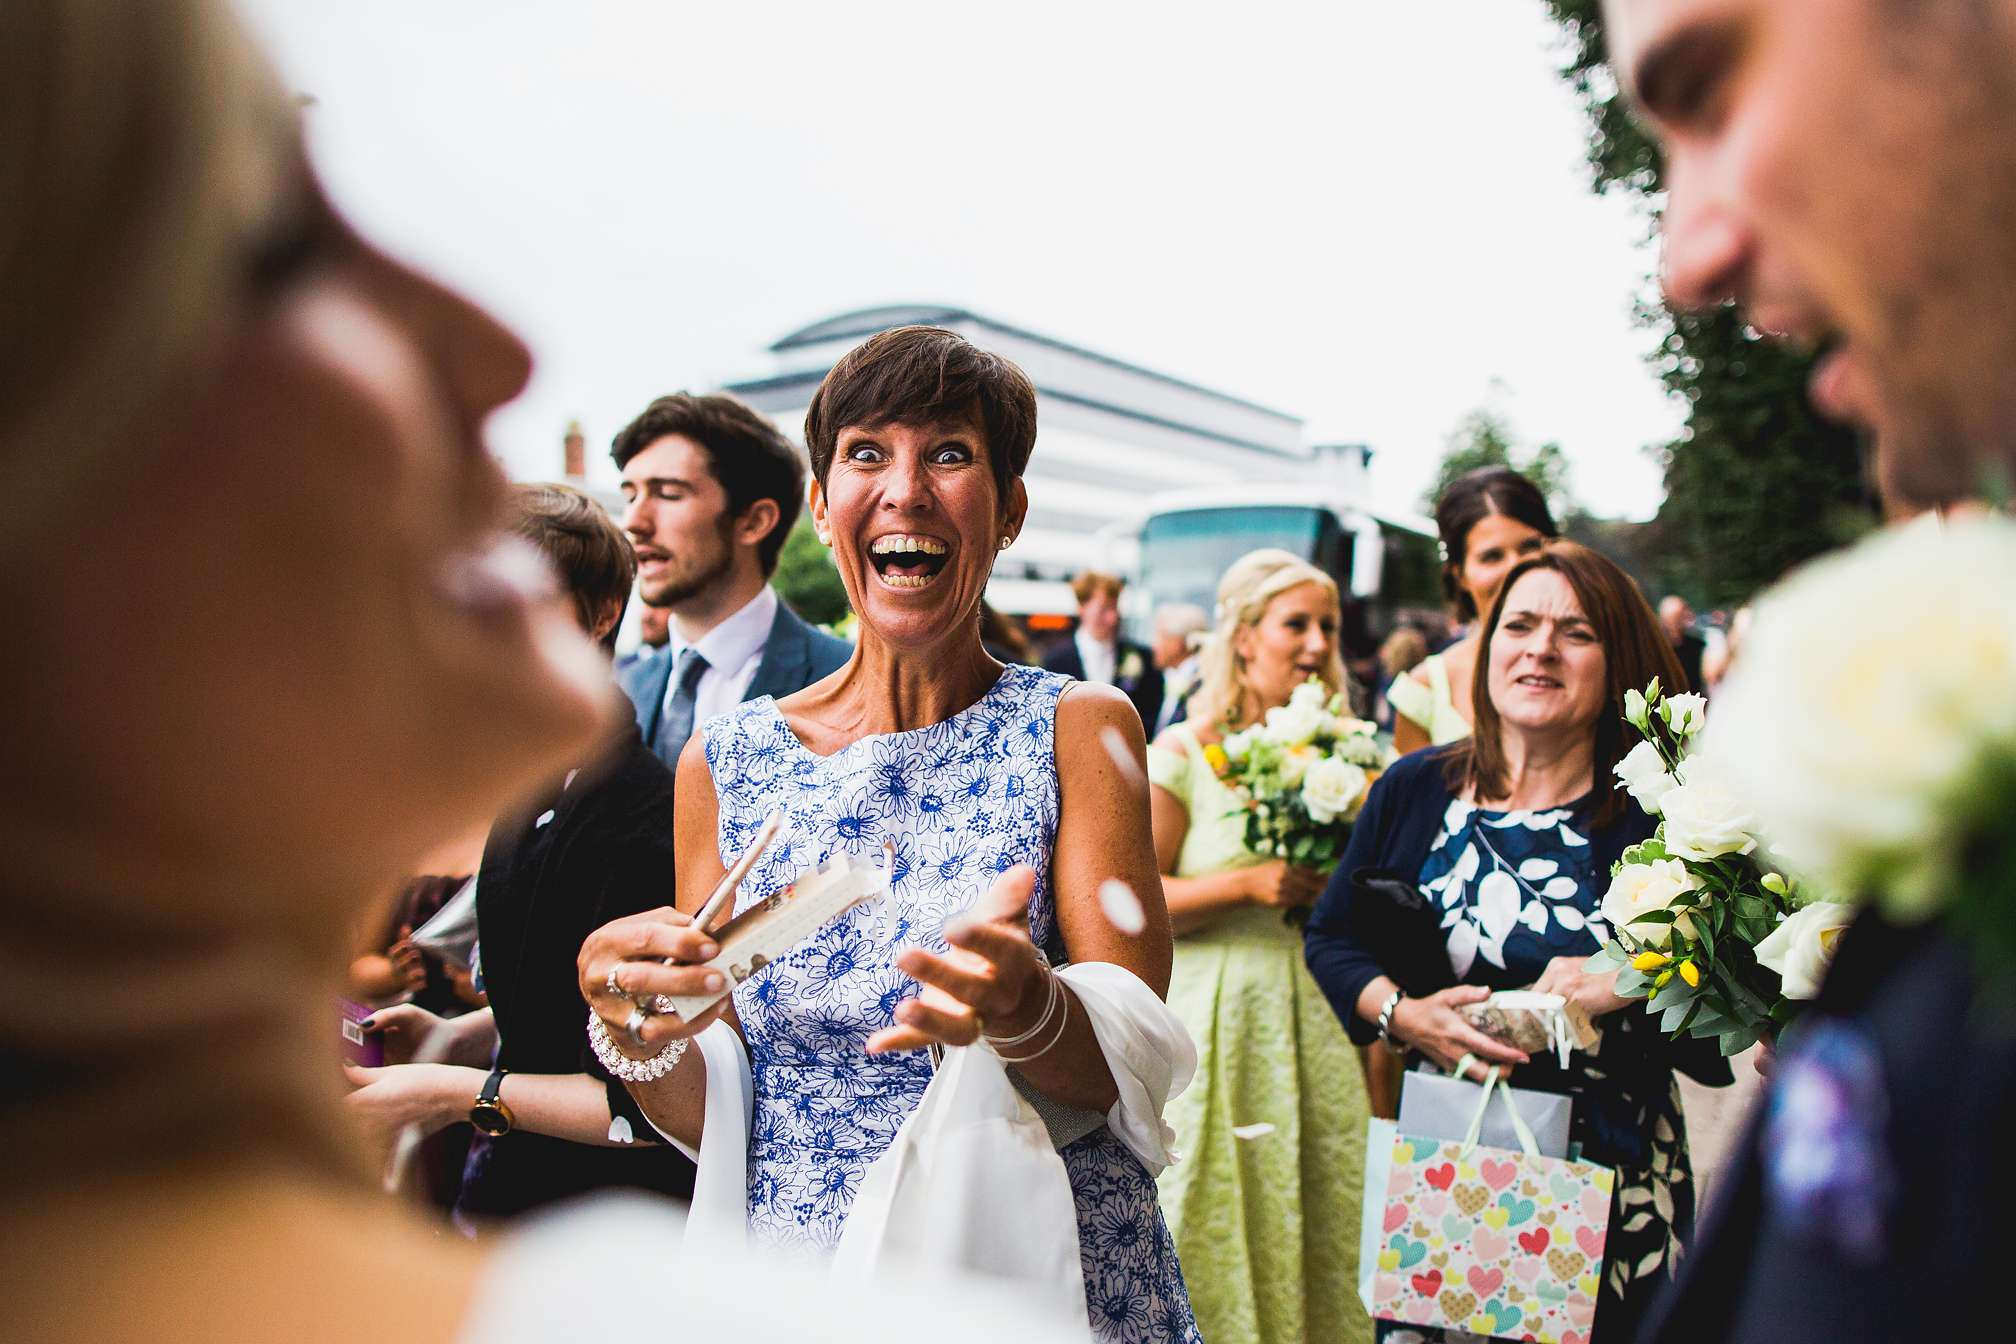 MyWed Editors Choice - Ecstatic Wedding Guest